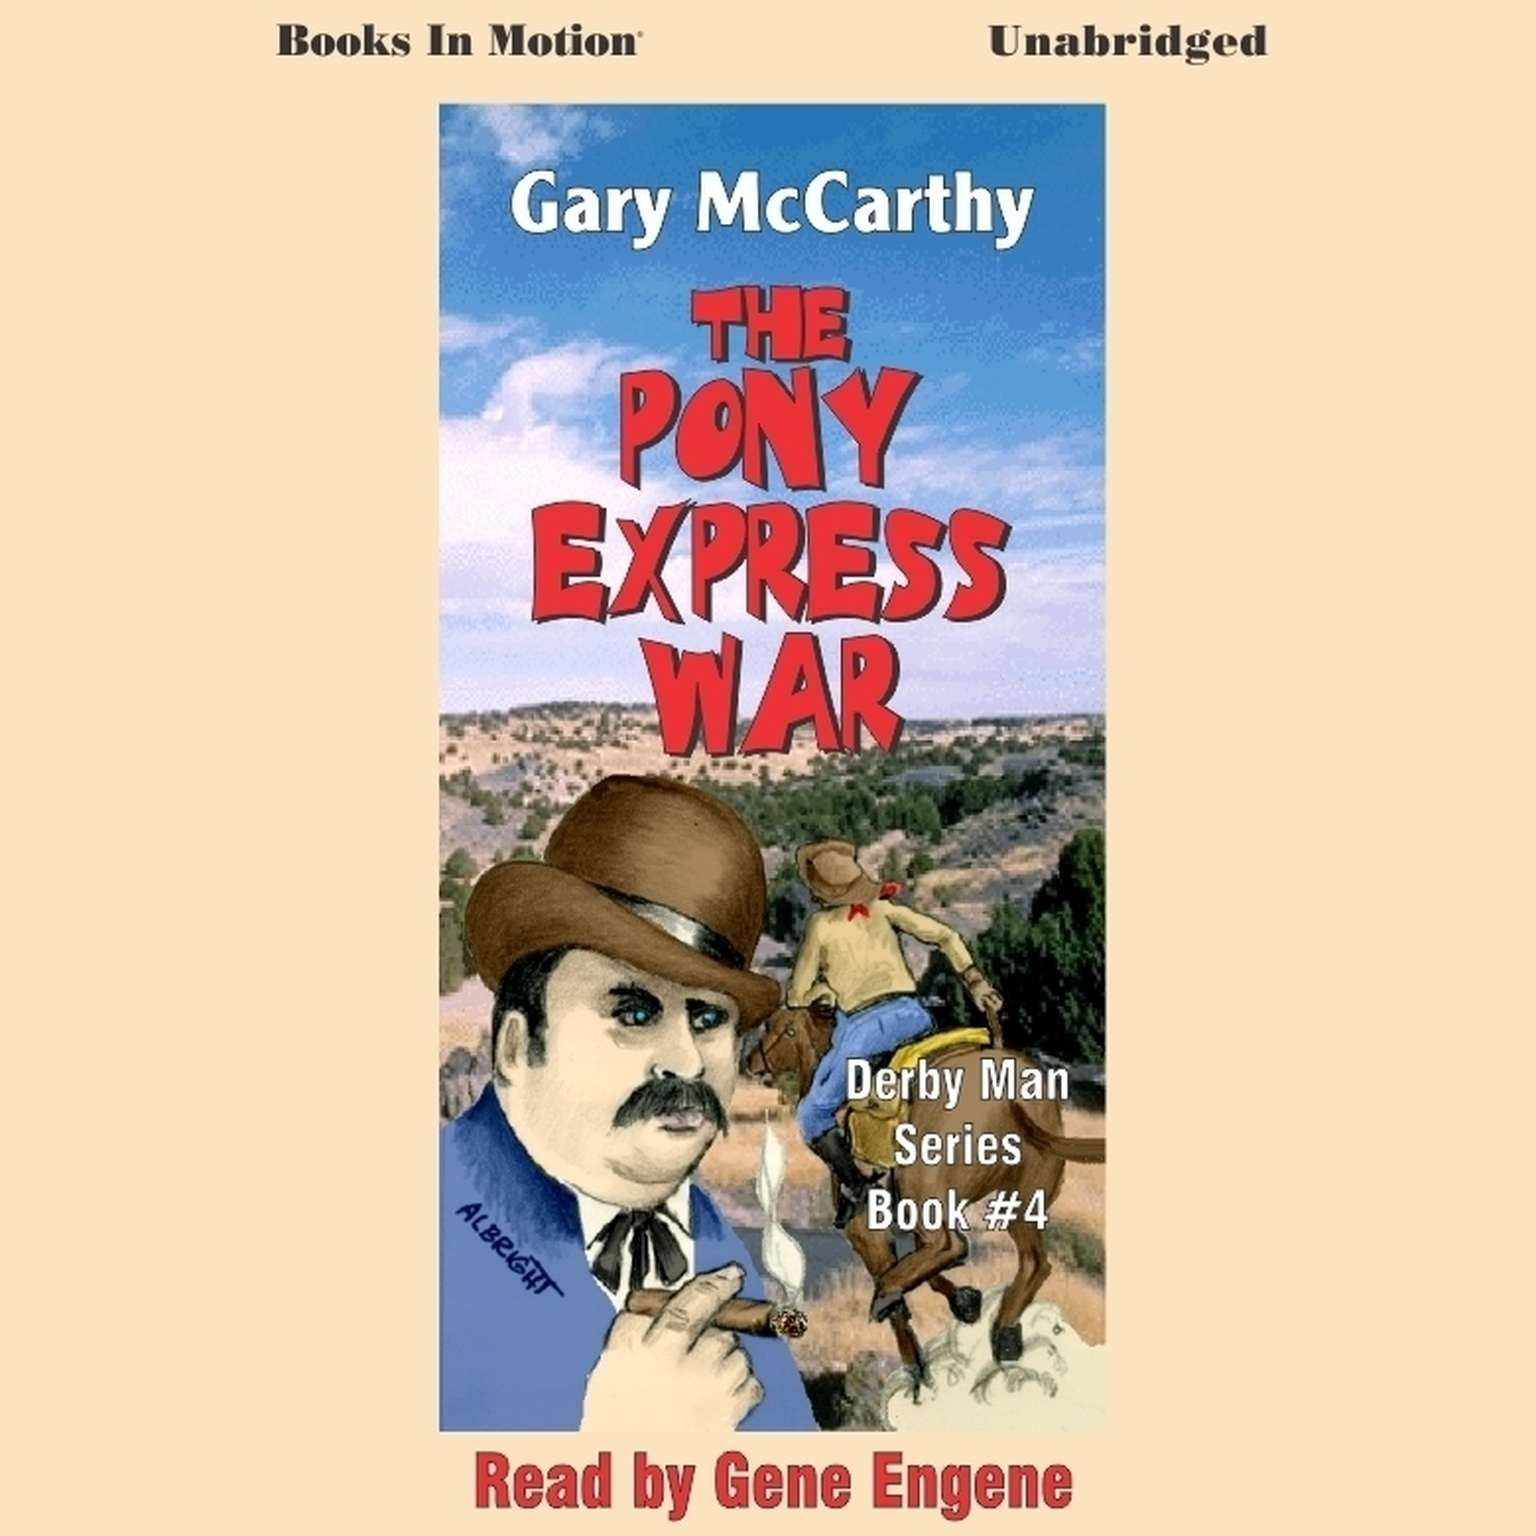 The Pony Express War Audiobook, by Gary McCarthy